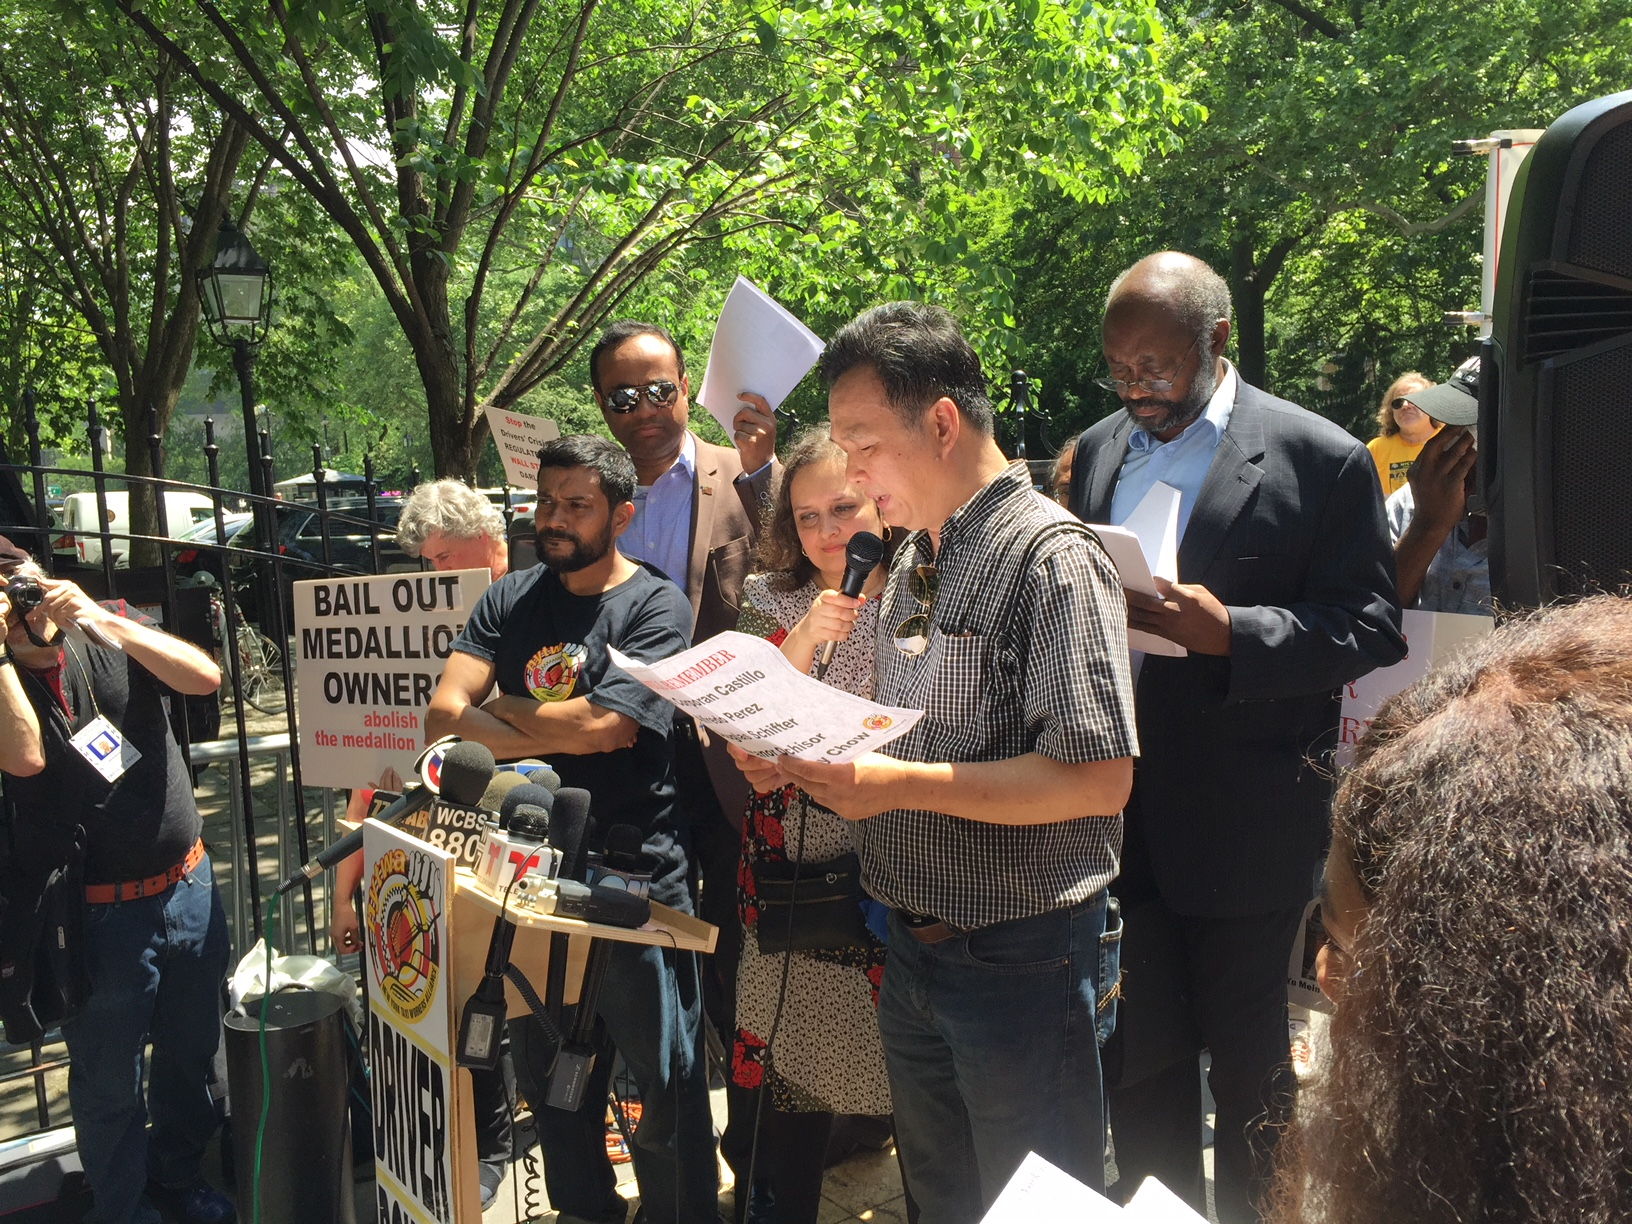 Richard Chow addresses crowd and reporters during press conference. (Photo credit Dave Pollack)